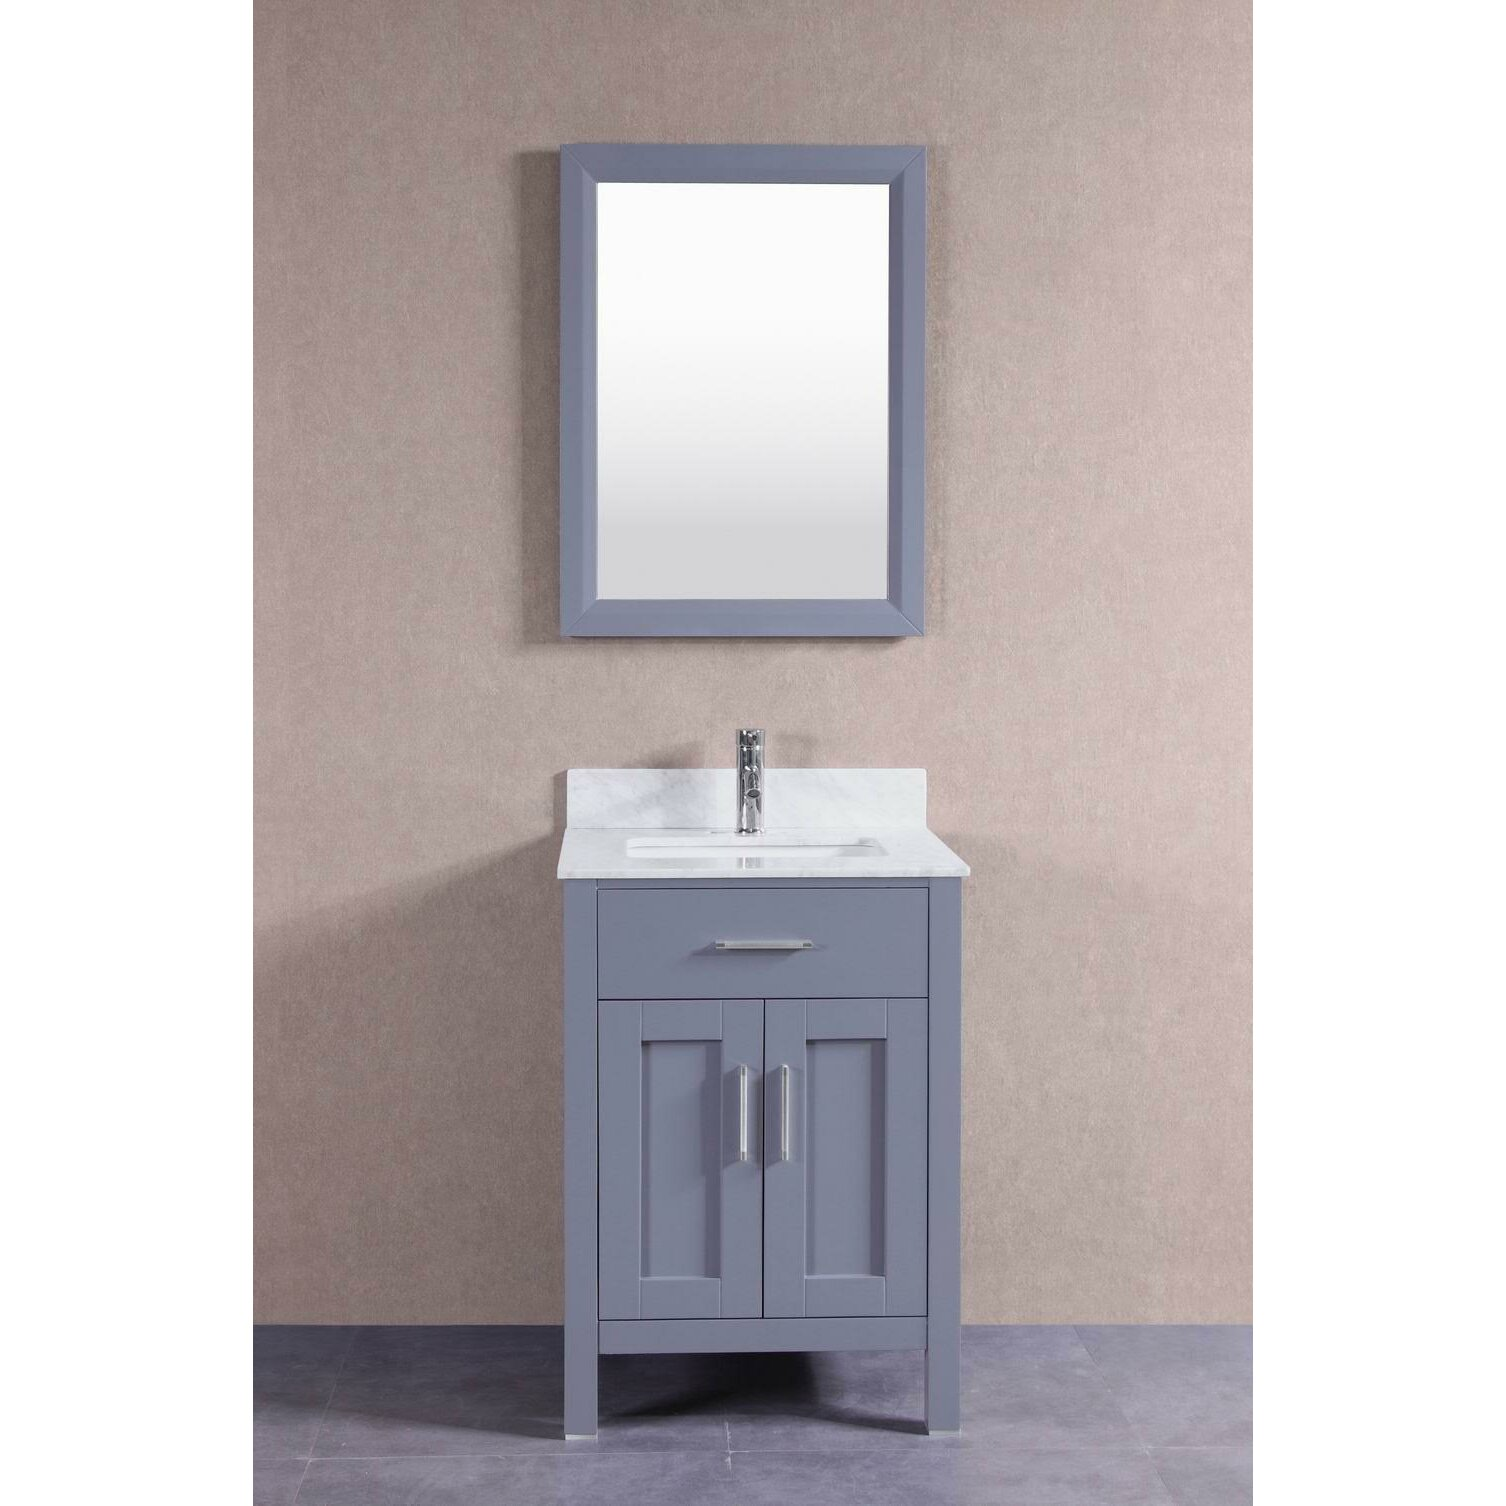 bathroom vanity sets belvederebath 24 quot single bathroom vanity set wayfair 716